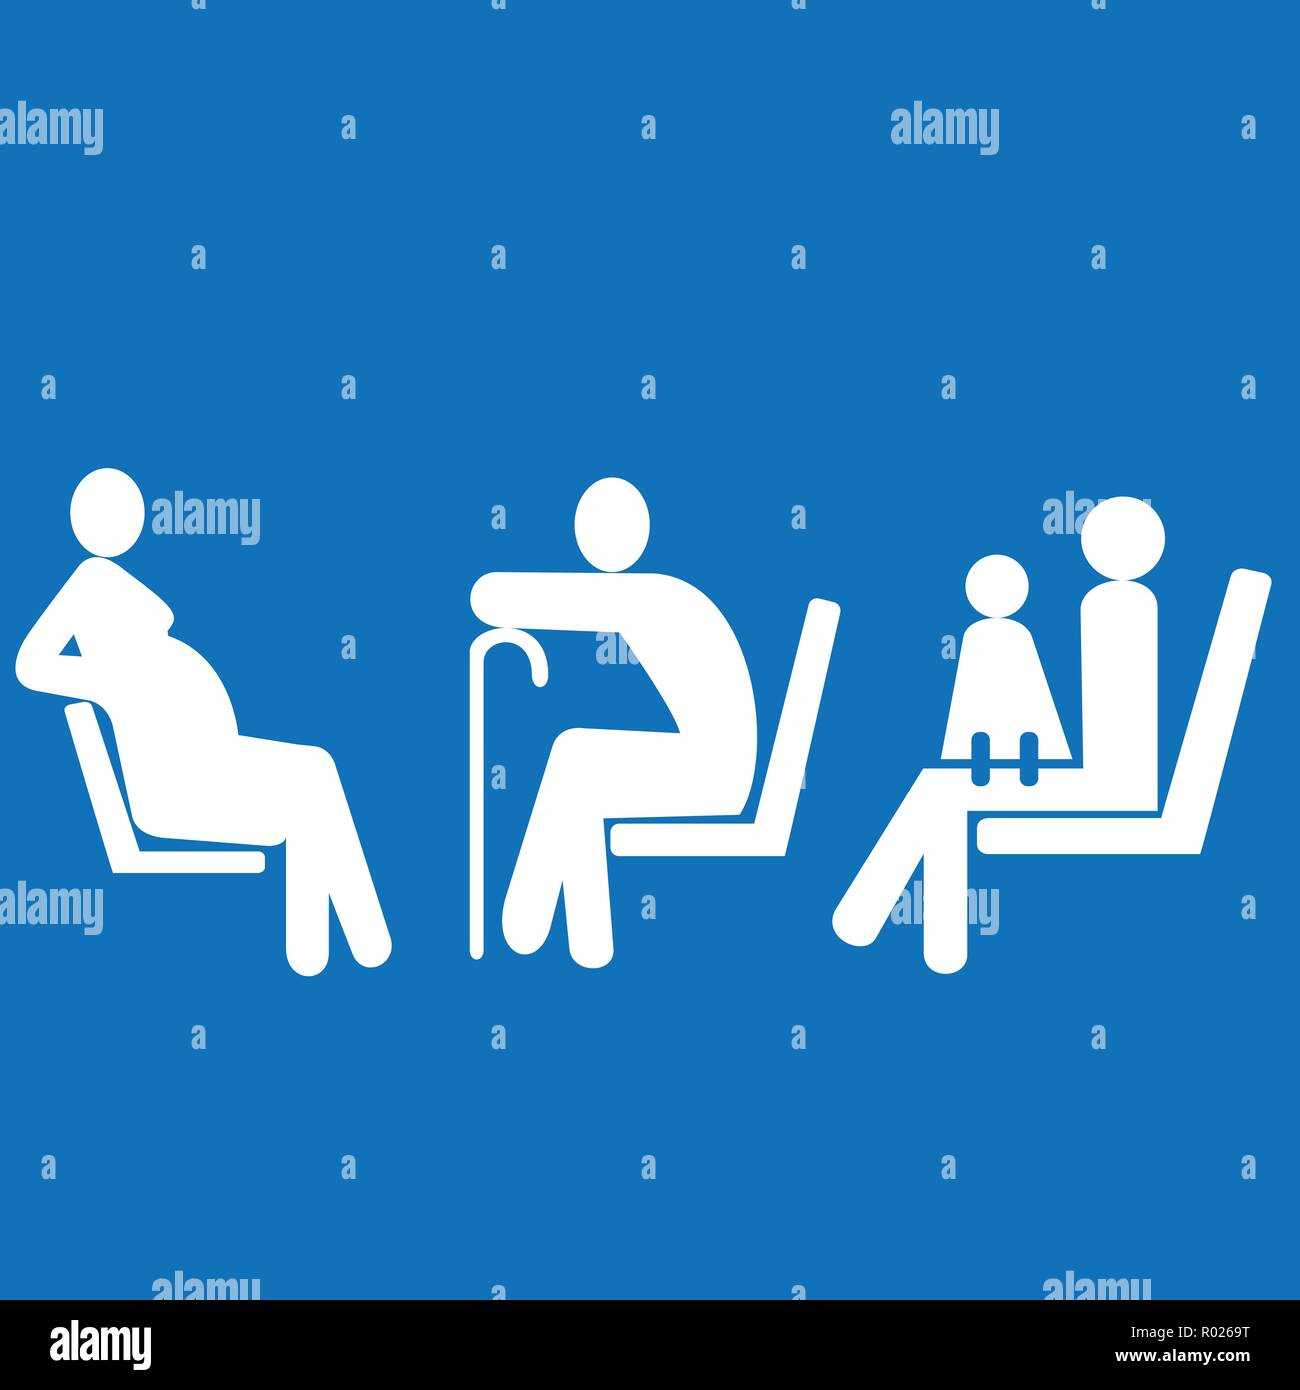 Priority seating for pregnant women, woman with baby and seniors - Stock Vector